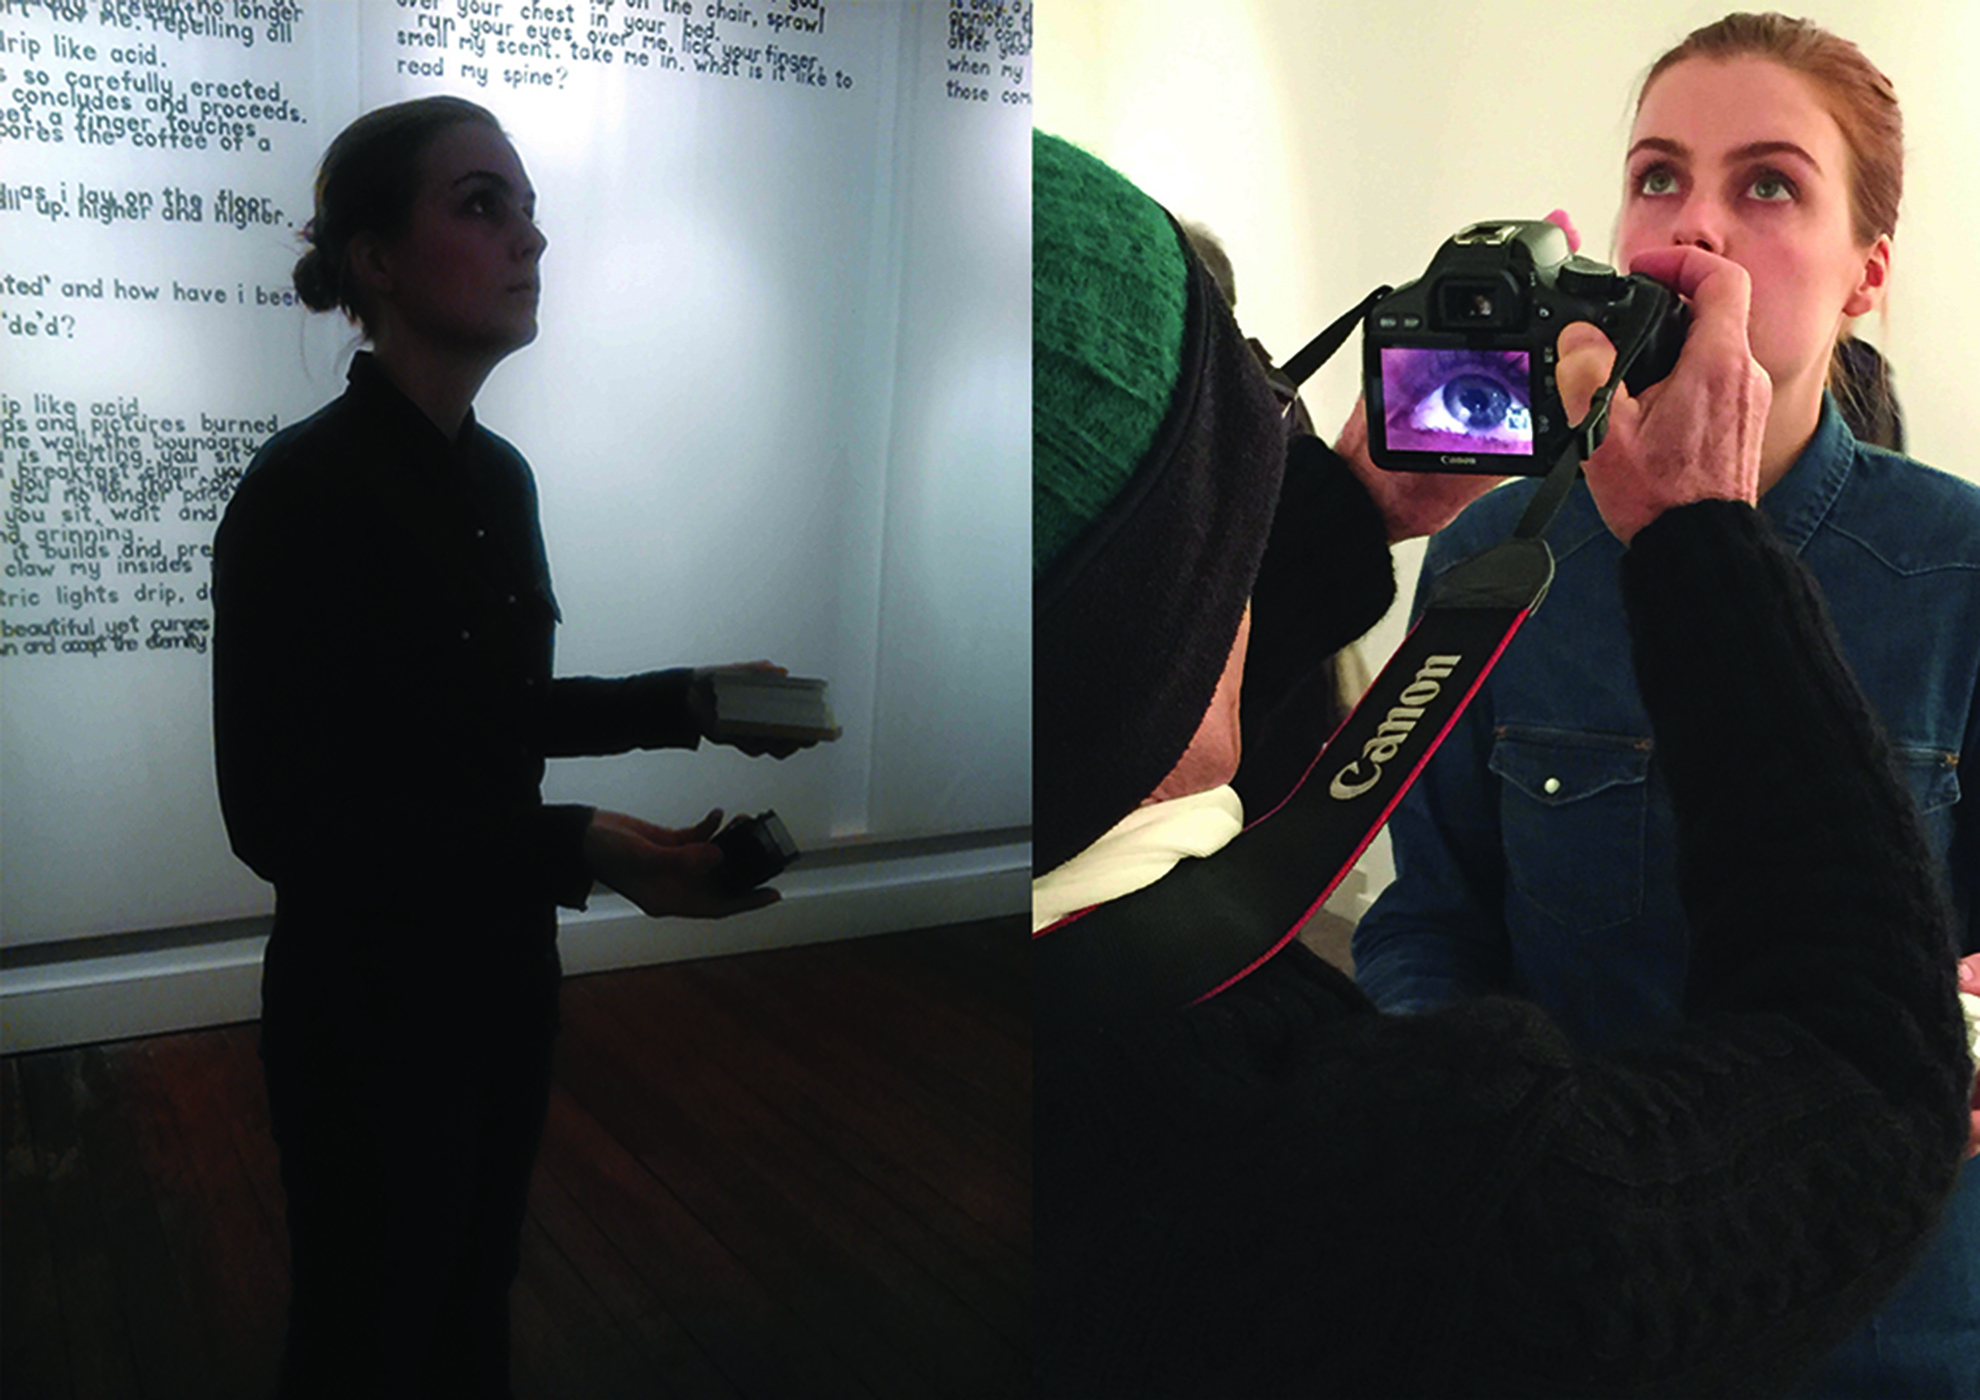 Coming Soon, endurance performance, 6 hours duration, 2016 (photographs courtesy of Meike Brunkhorst and Lorraine Fossi)